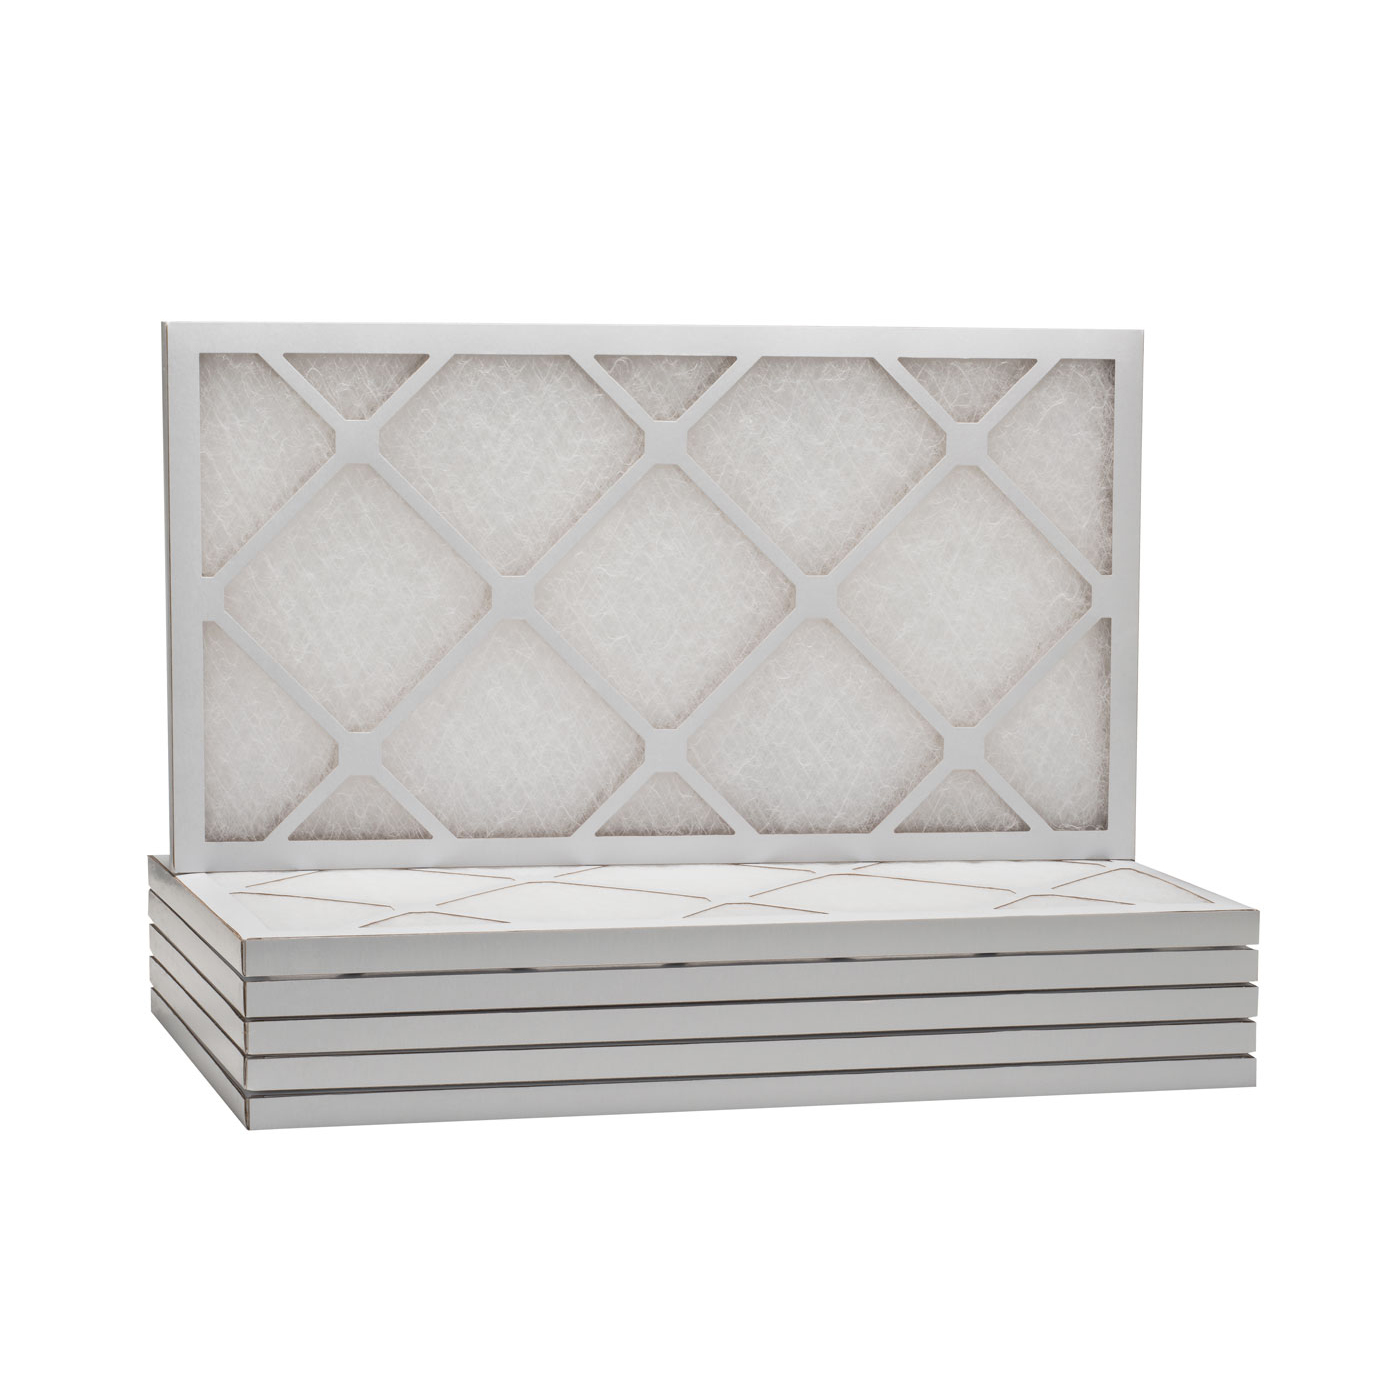 20x34x1 Basic MERV 6 Air Filter   Furnace Filter Replacement by Tier1